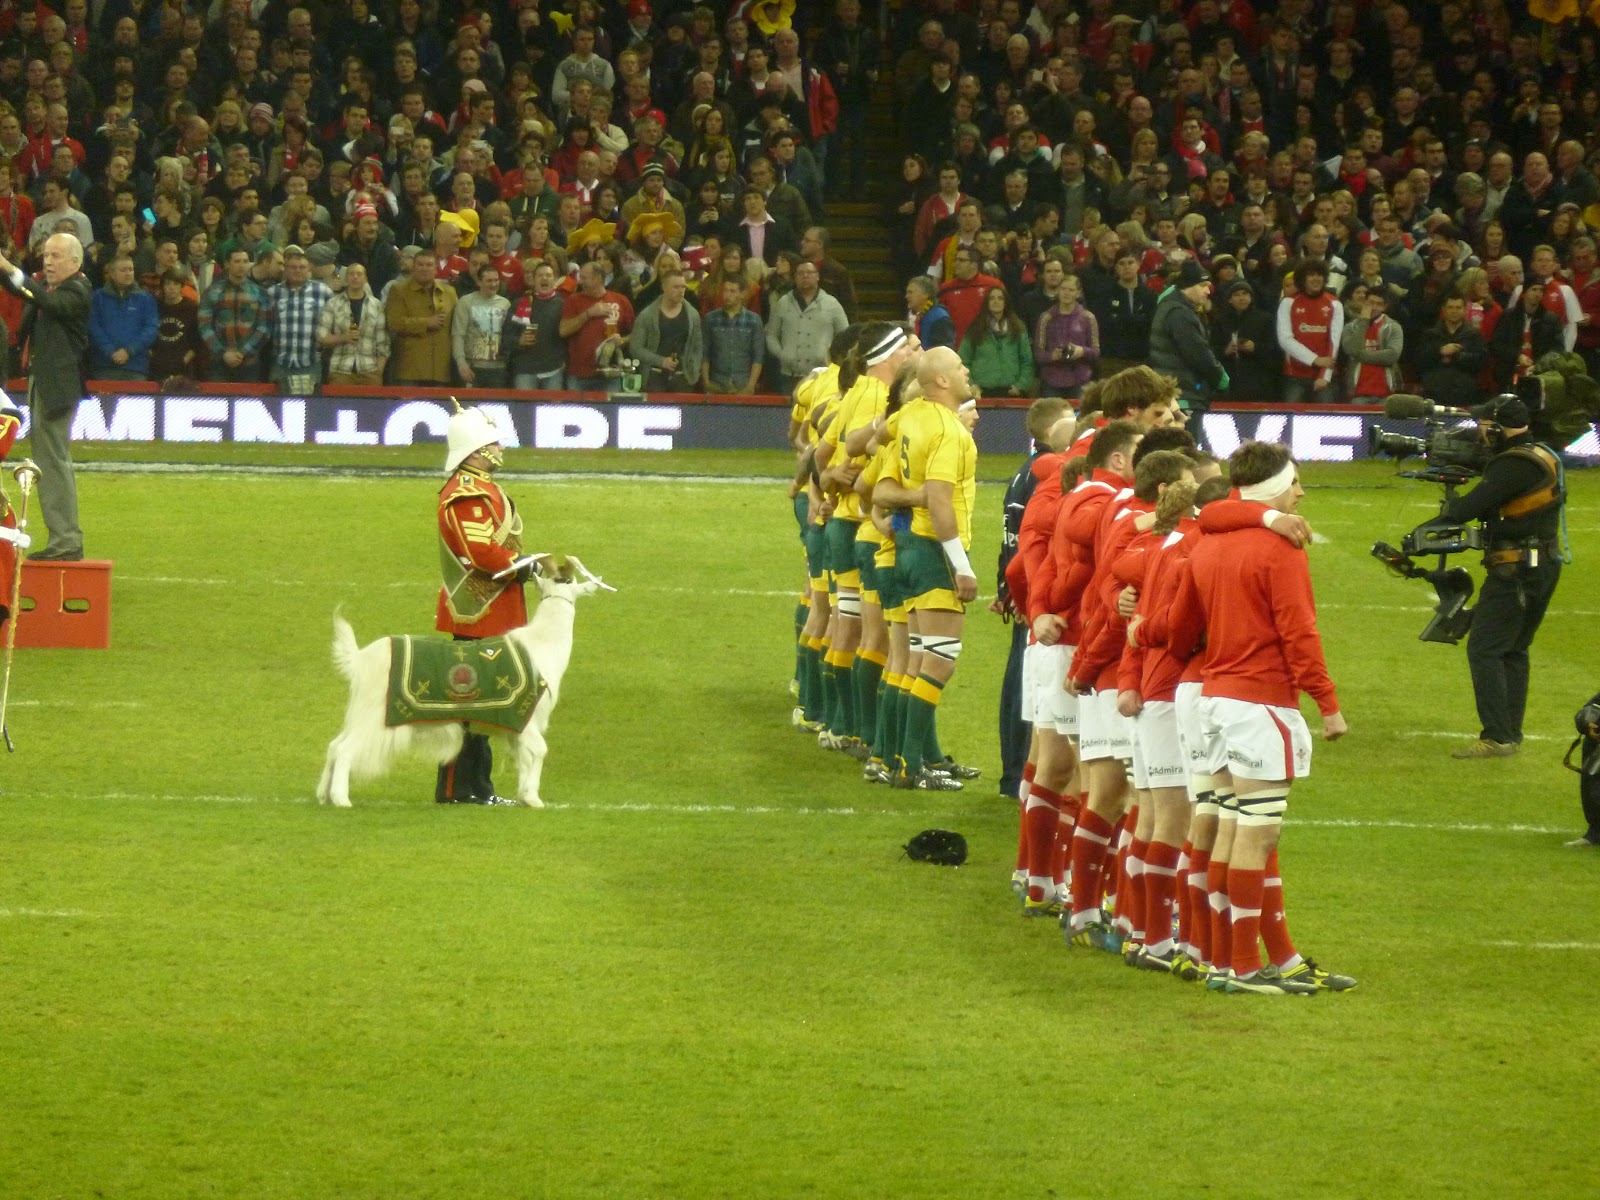 Wales Australia Goat